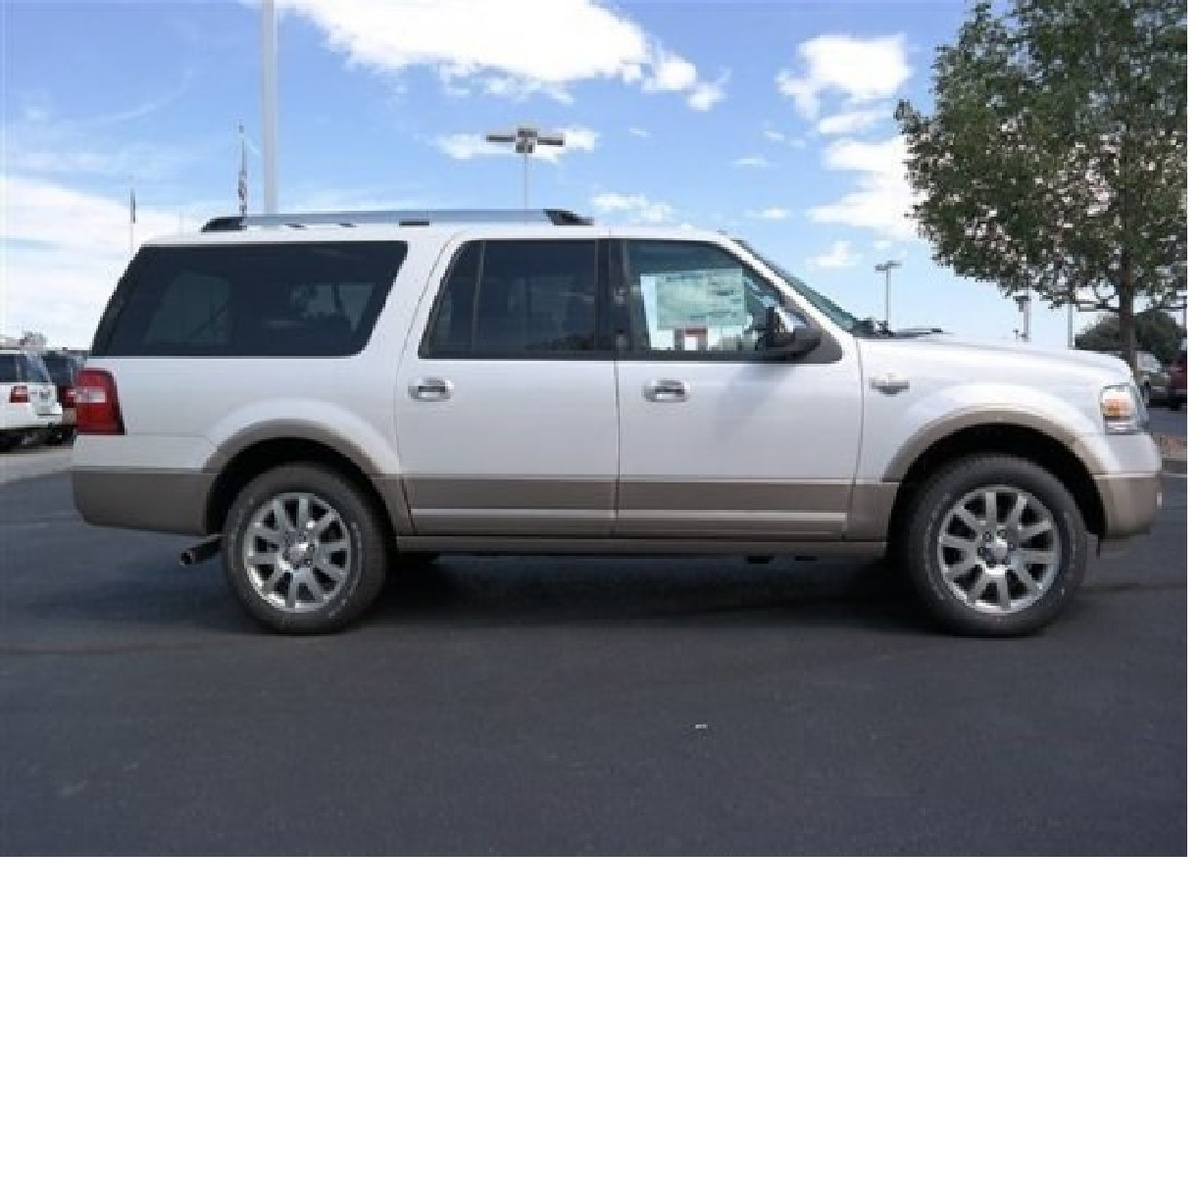 Used Ford Expedition For Sale Kansas City Mo Cargurus Autos Post